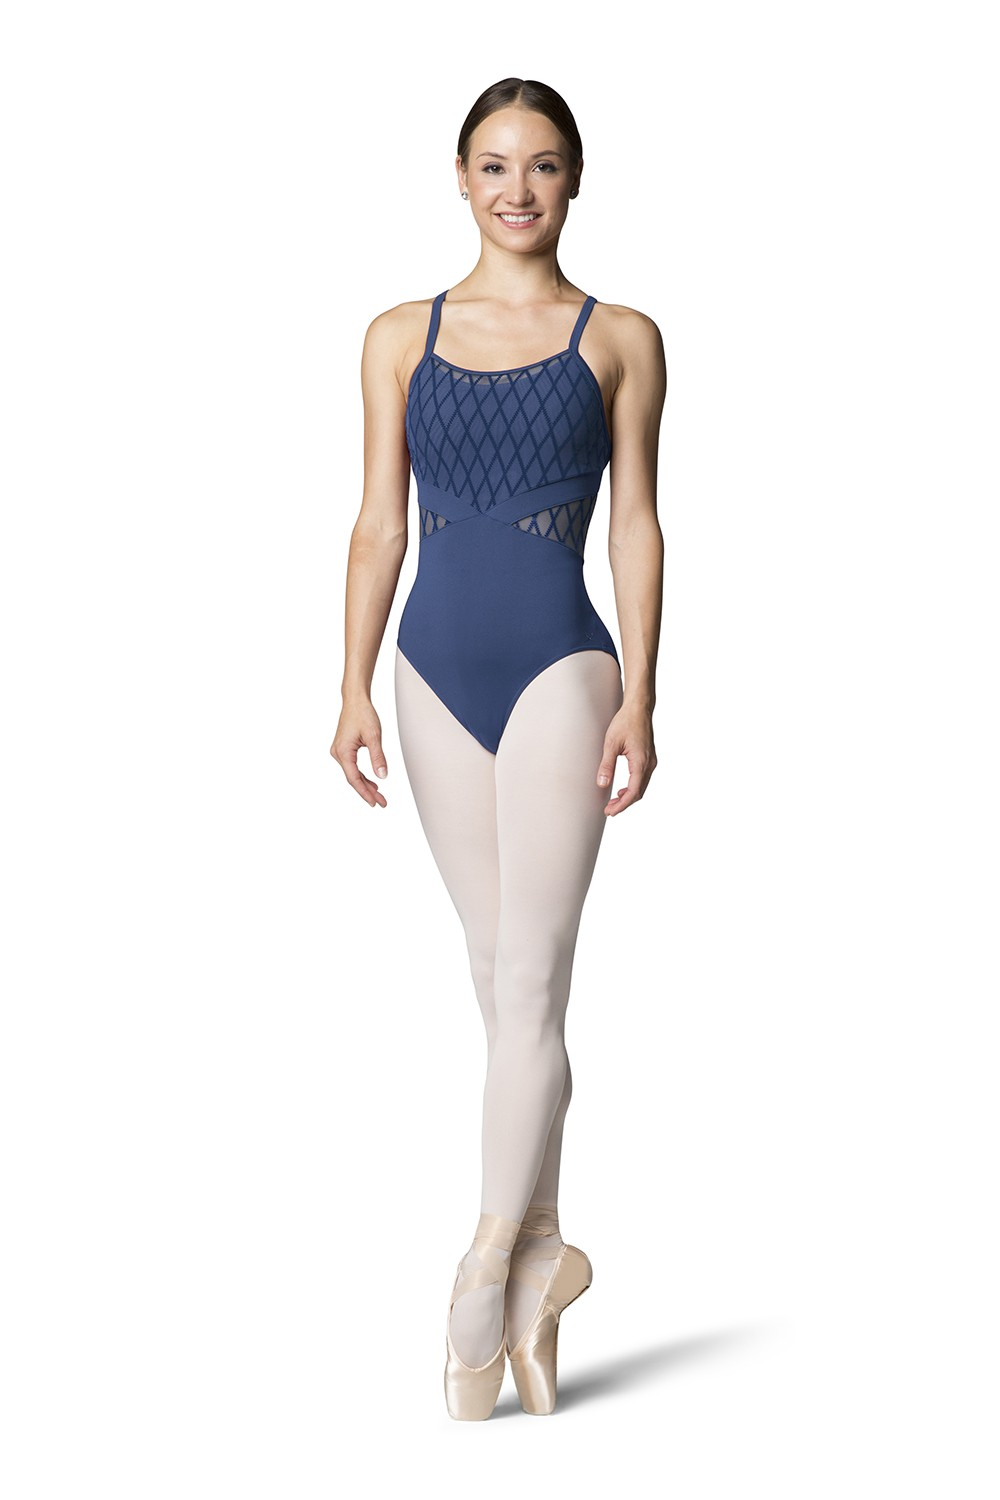 Adelita Womens Camisole Leotards